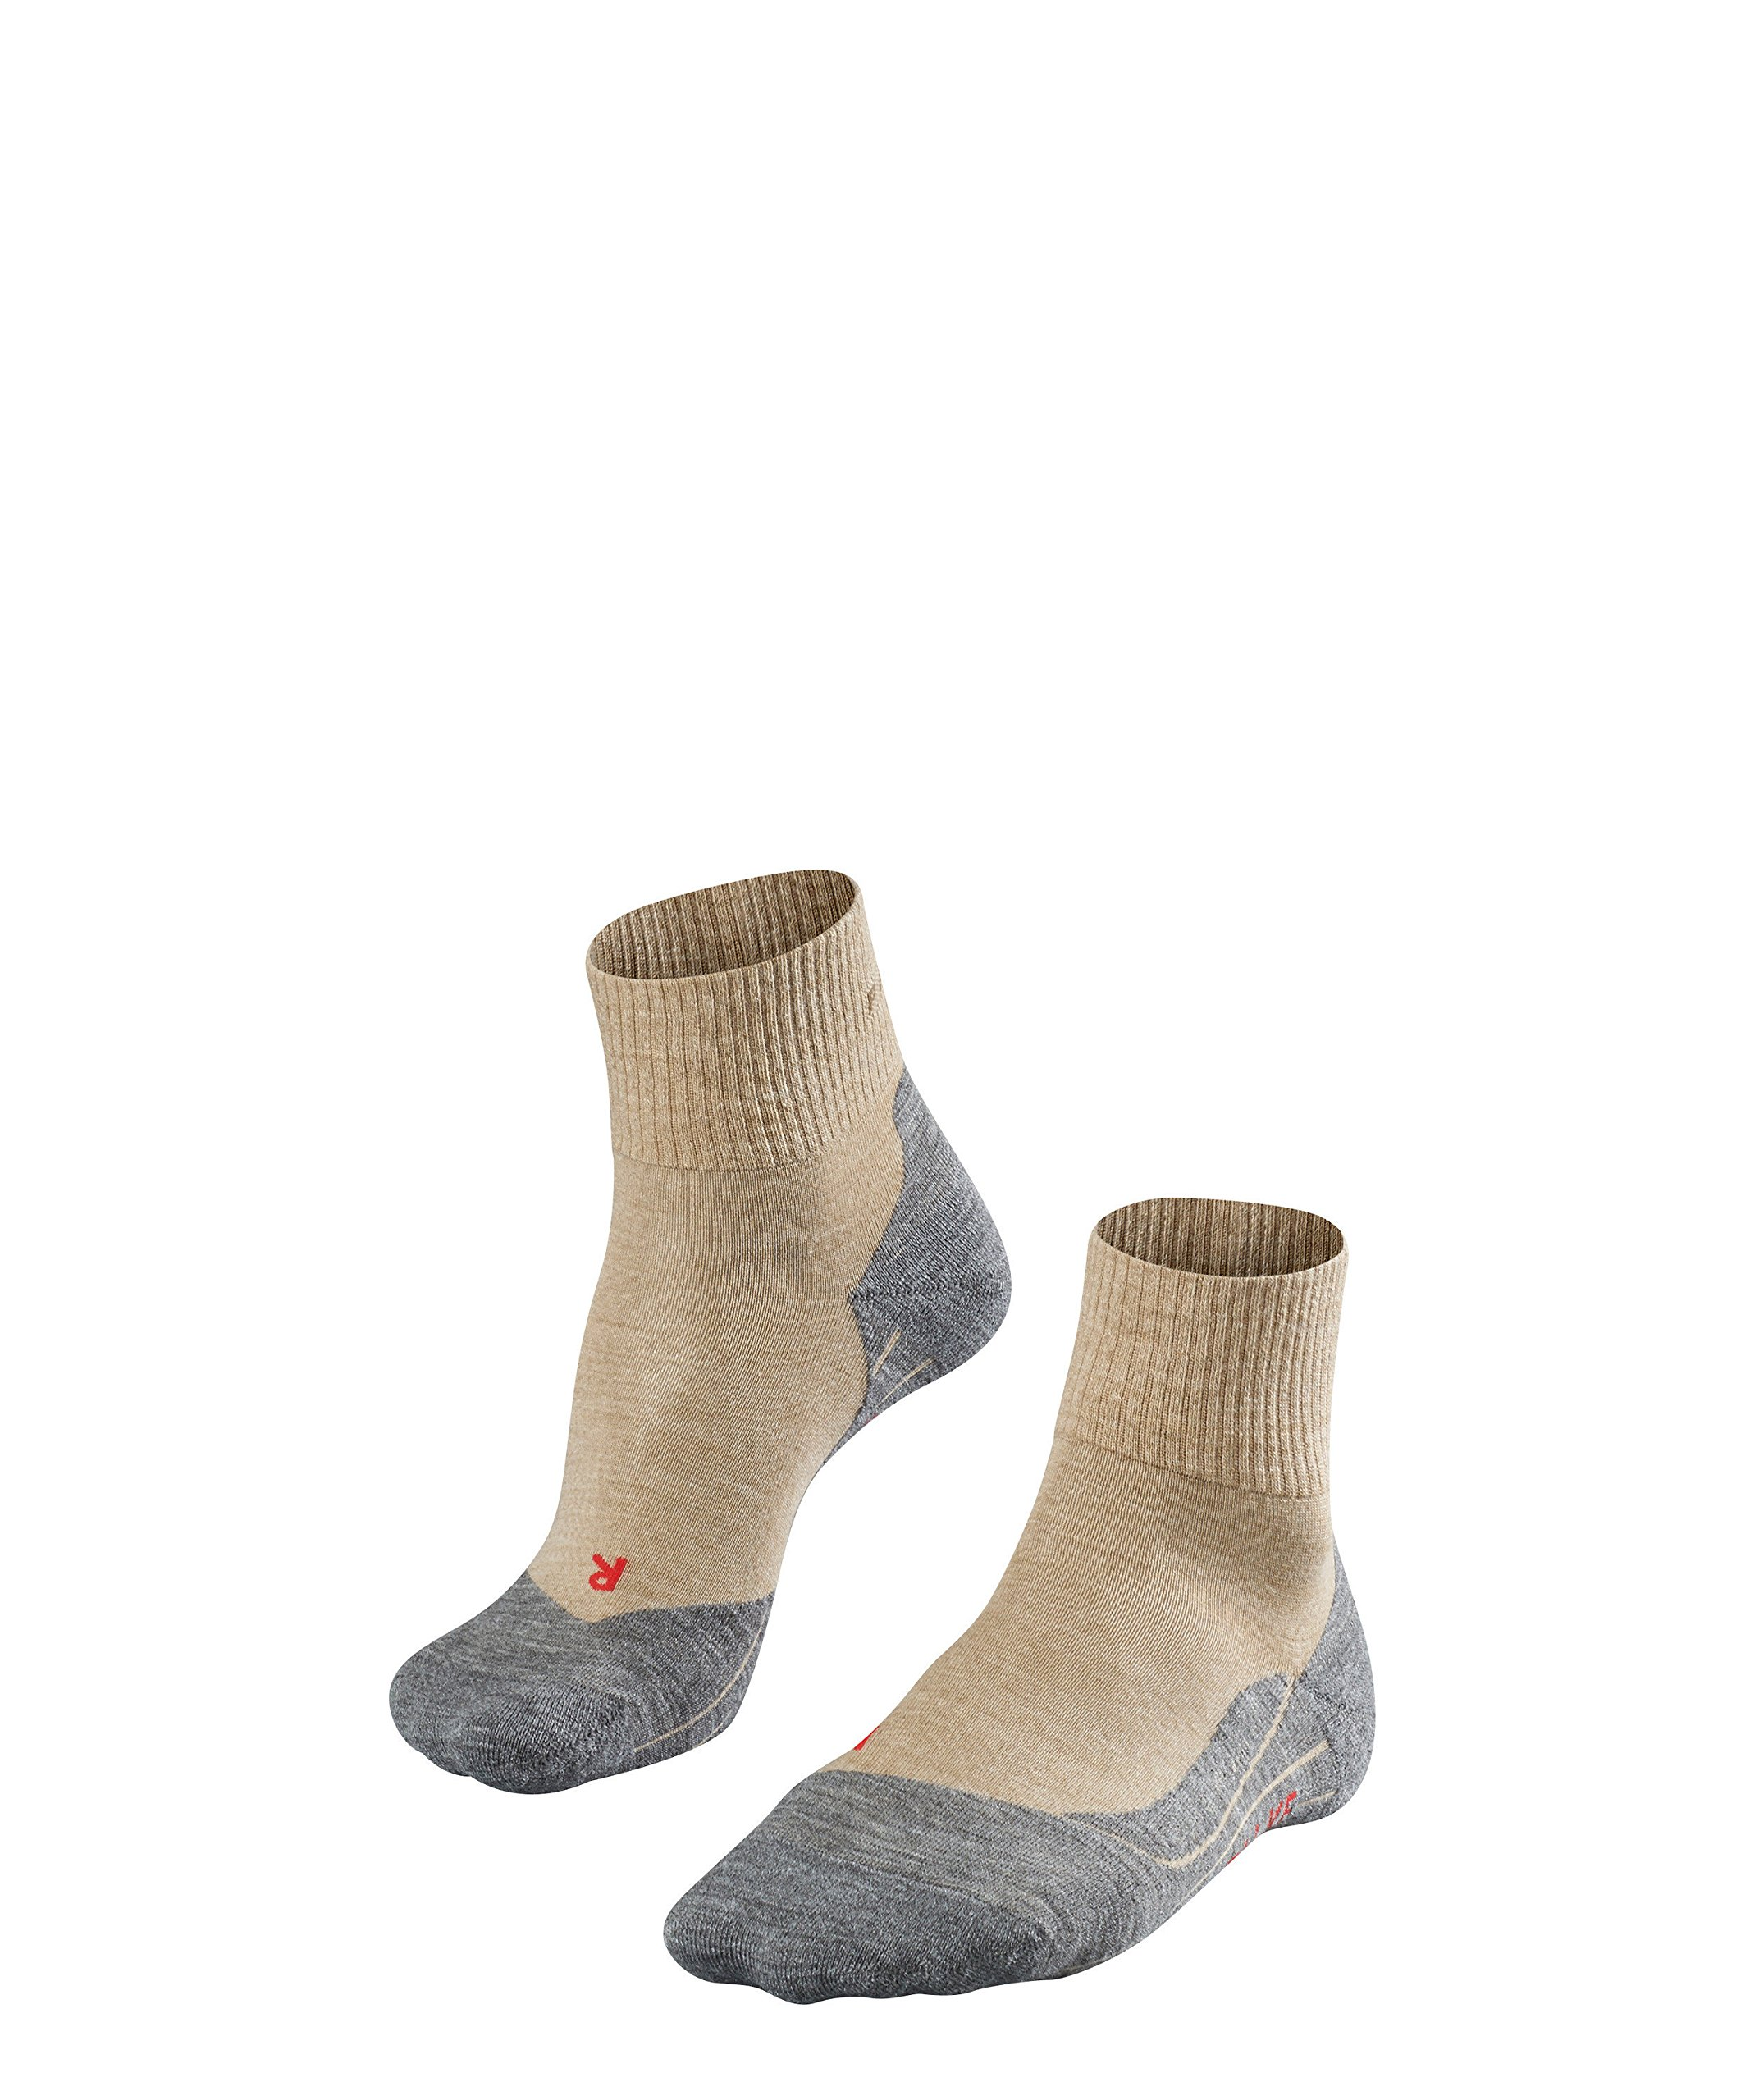 Falke womens TK5 Short Hiking Sock Merino Wool Blend